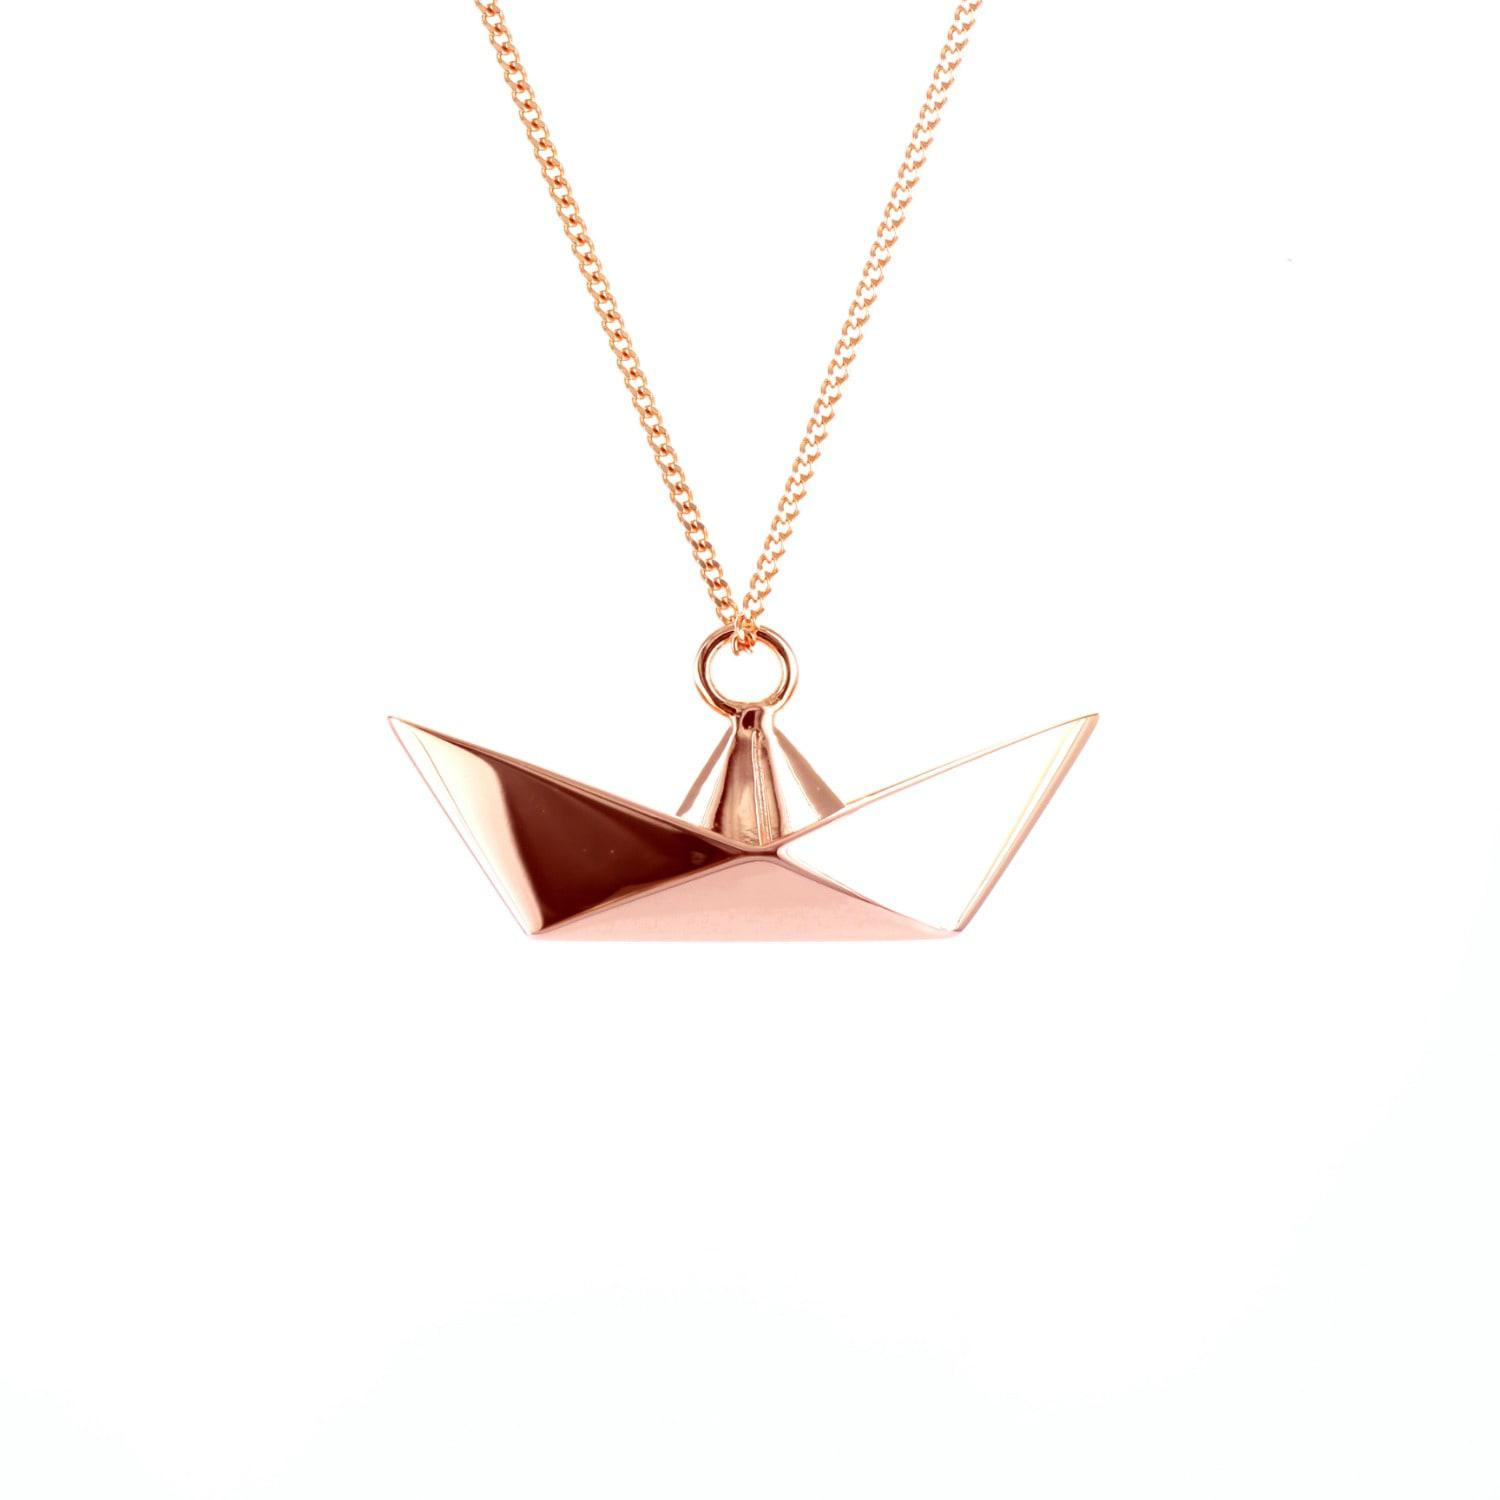 Origami Jewellery Sterling Silver & Pink Gold Mini Boat Origami Necklace l434vMoV8